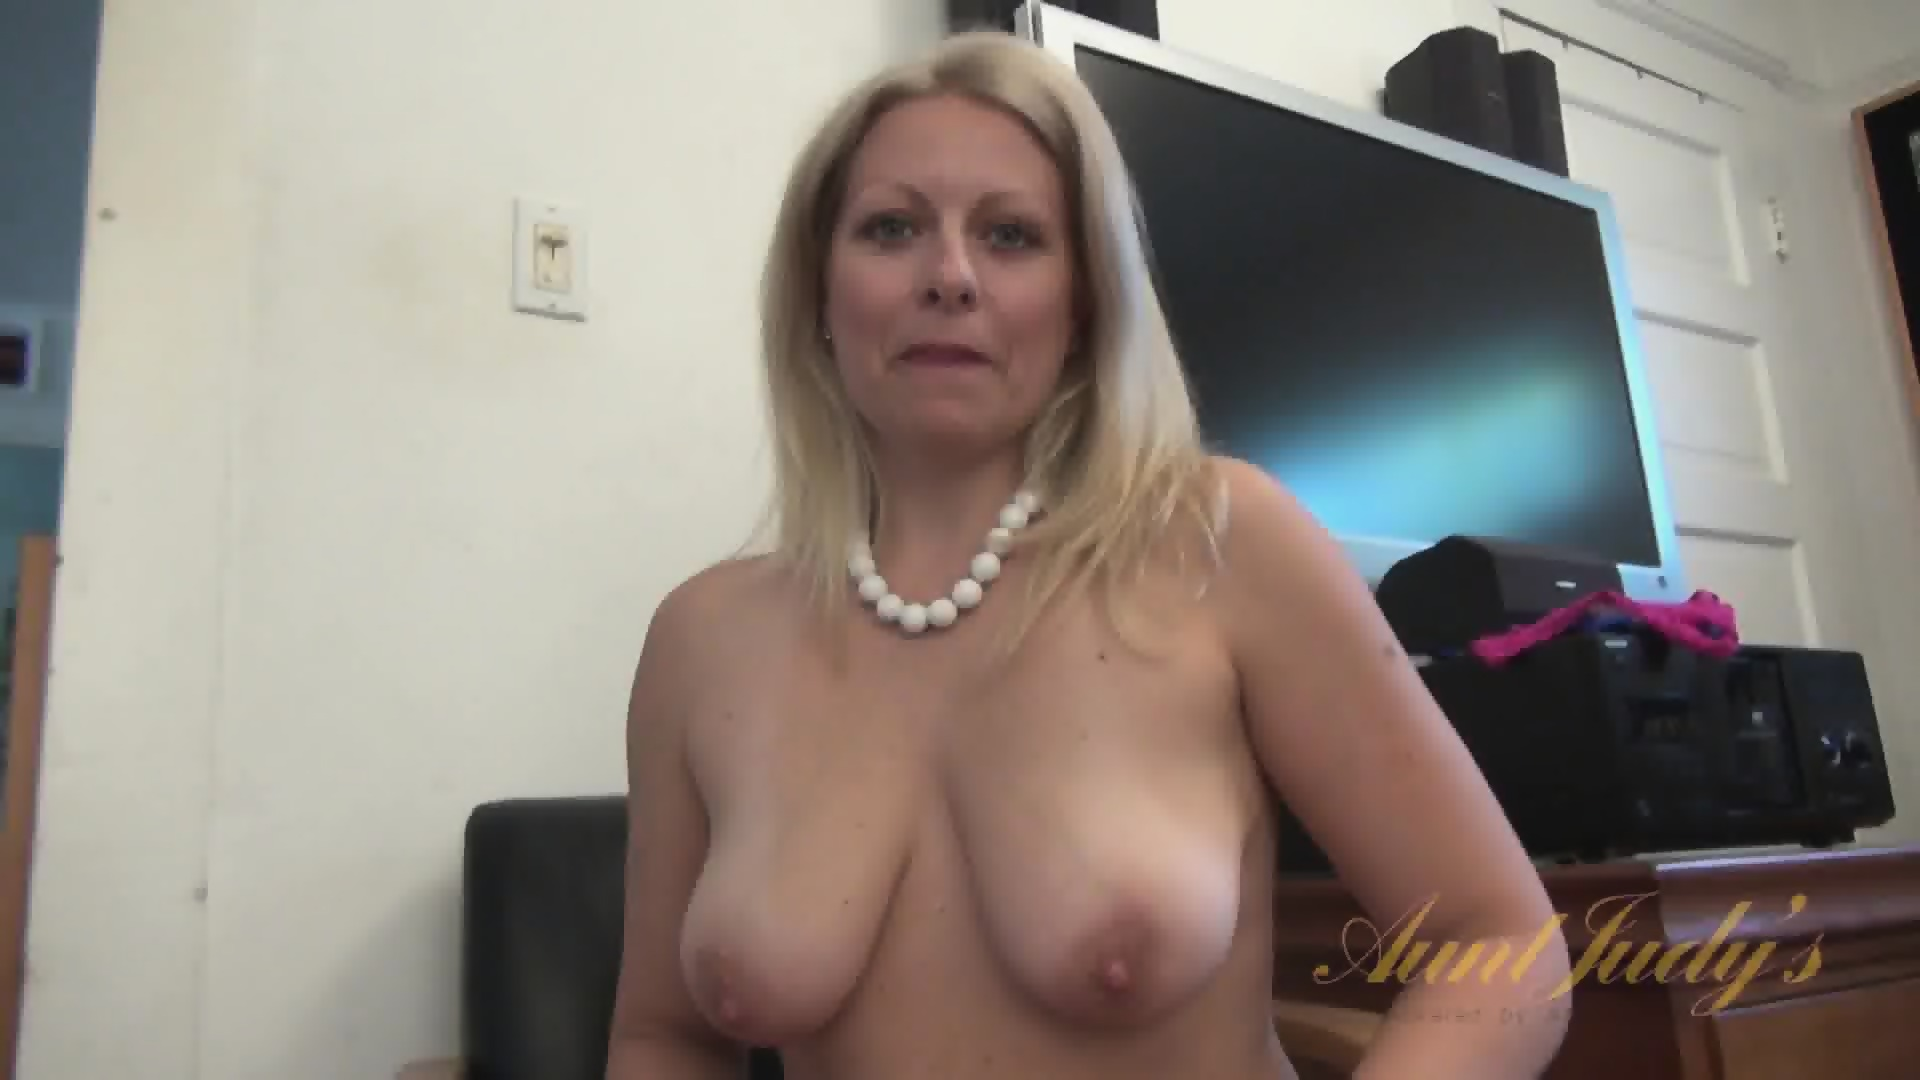 Sexy mom 59 bbw blonde mature masturbation - 1 part 1